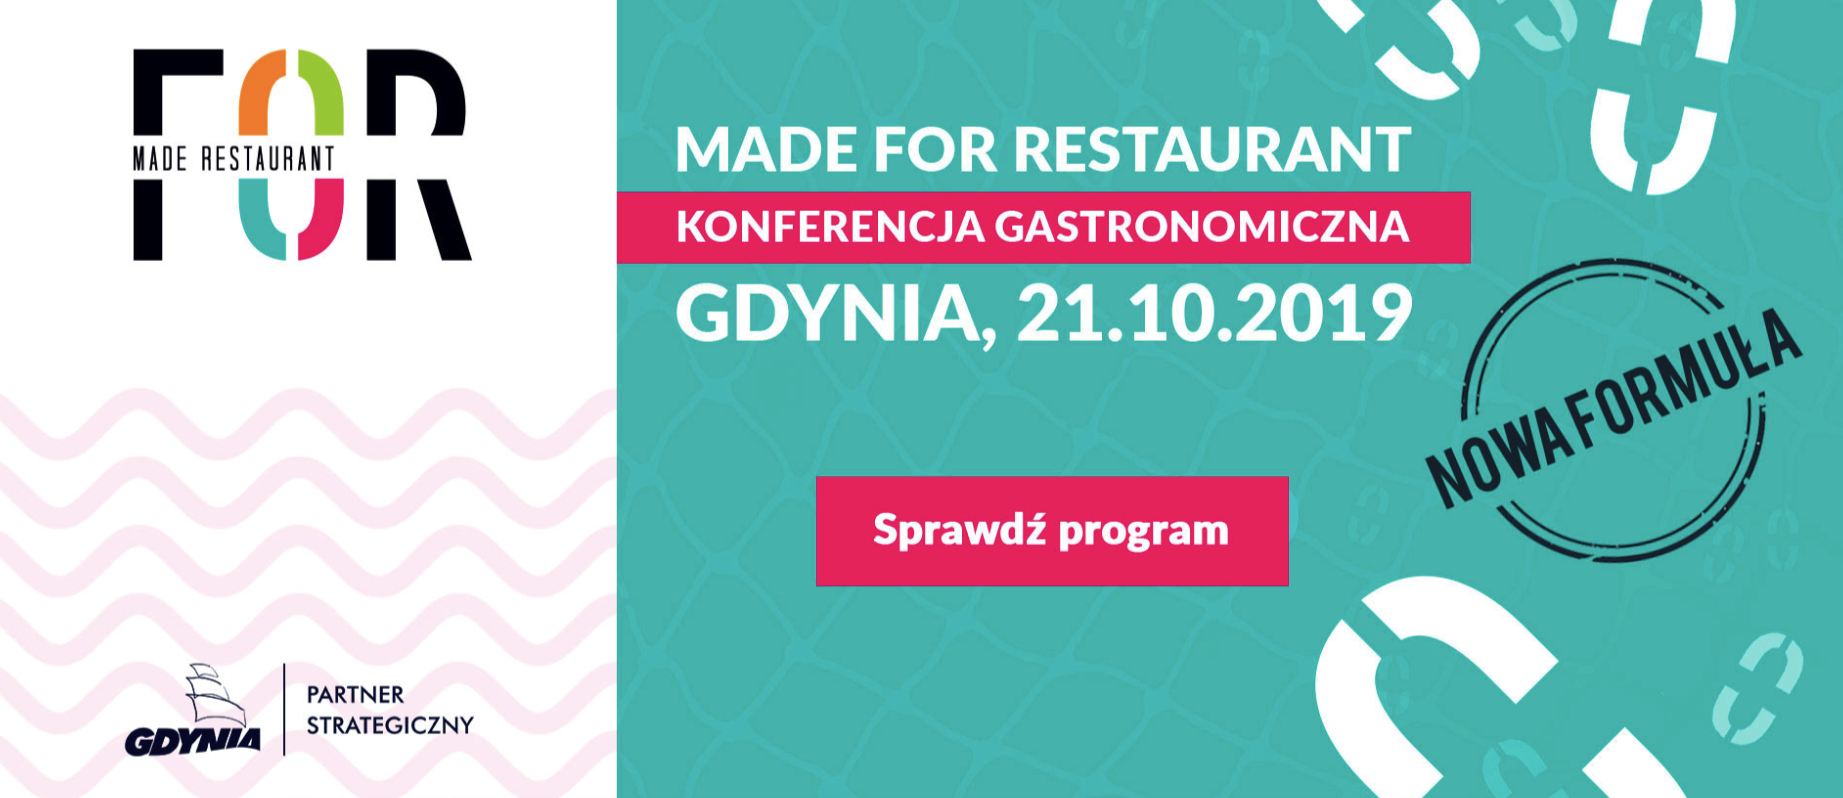 Made for Restaurant Gdynia 2019